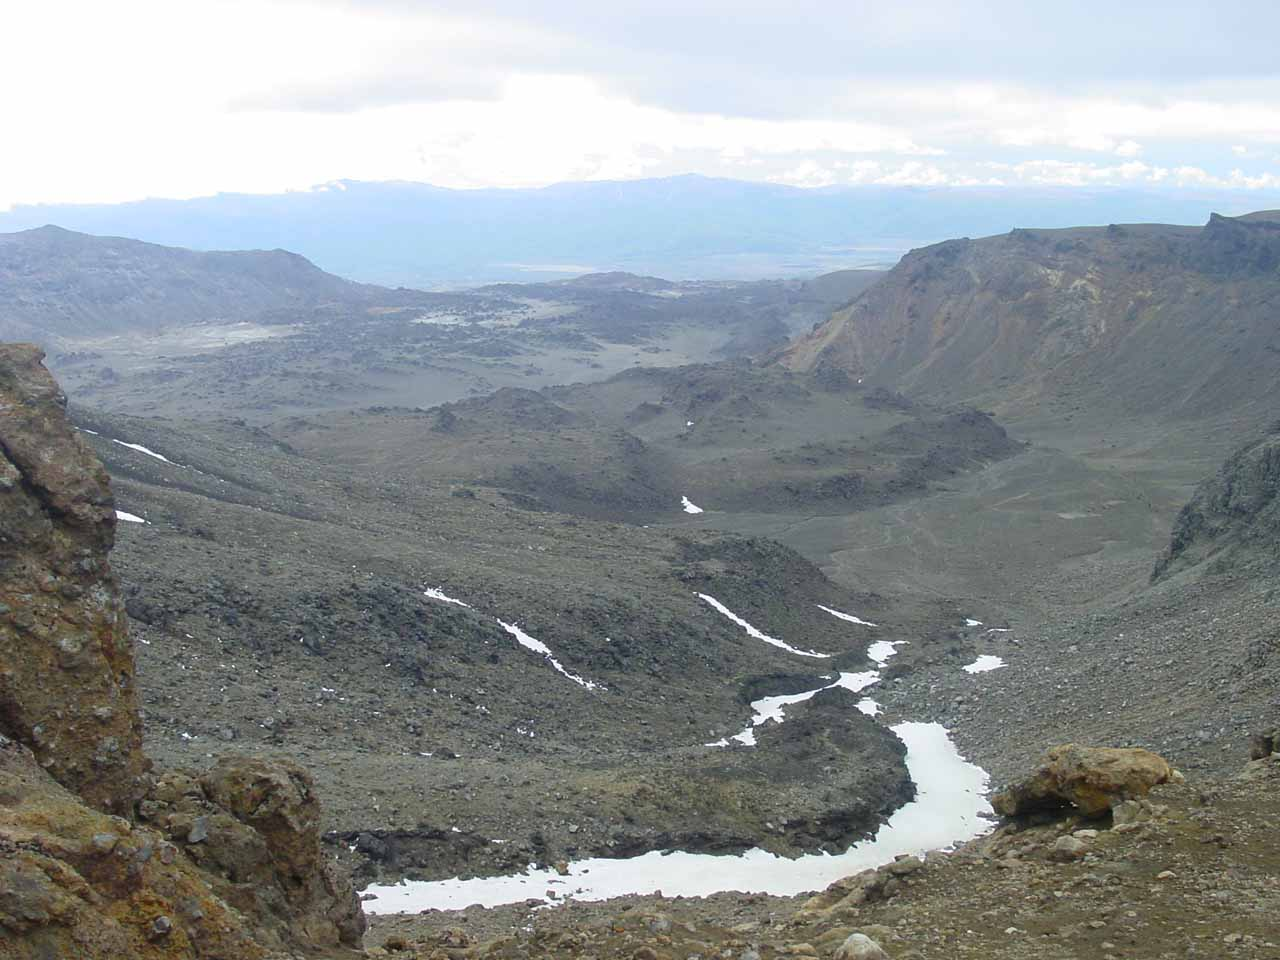 Looking across the desolate terrain as we were continuing to go up higher on the Tongariro Crossing